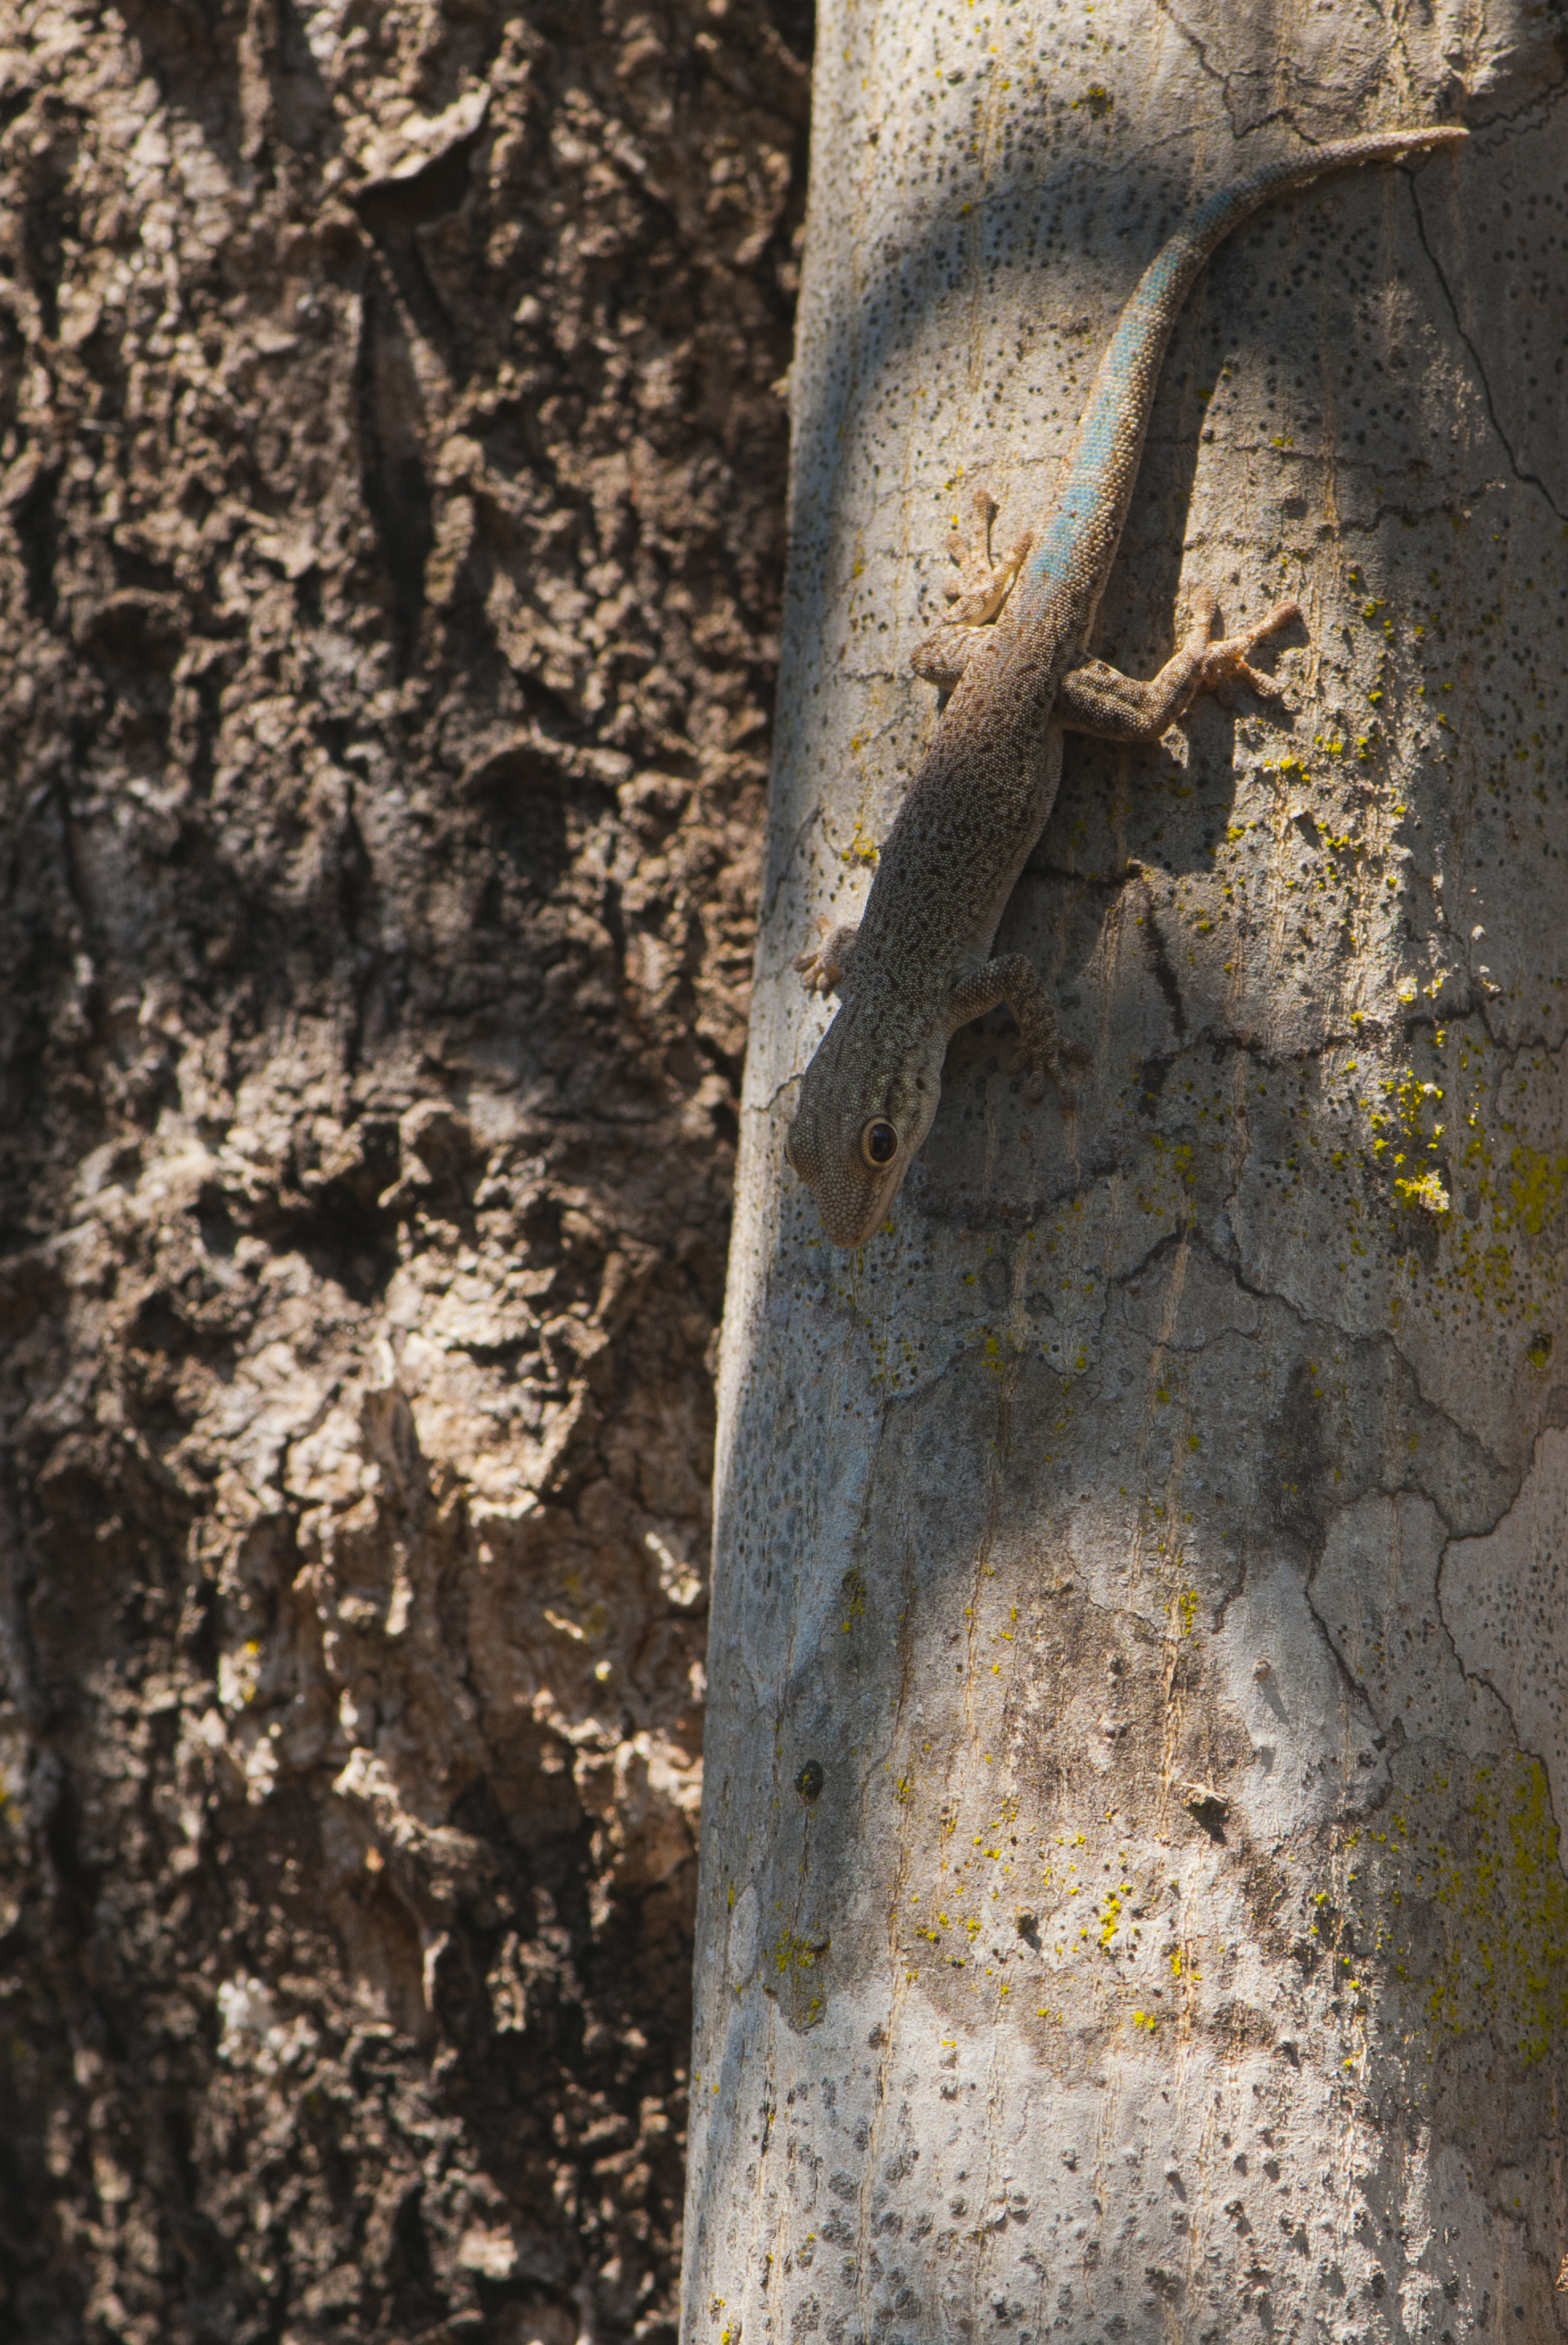 Phelsuma mutabilis on a tree in southern Madagascar